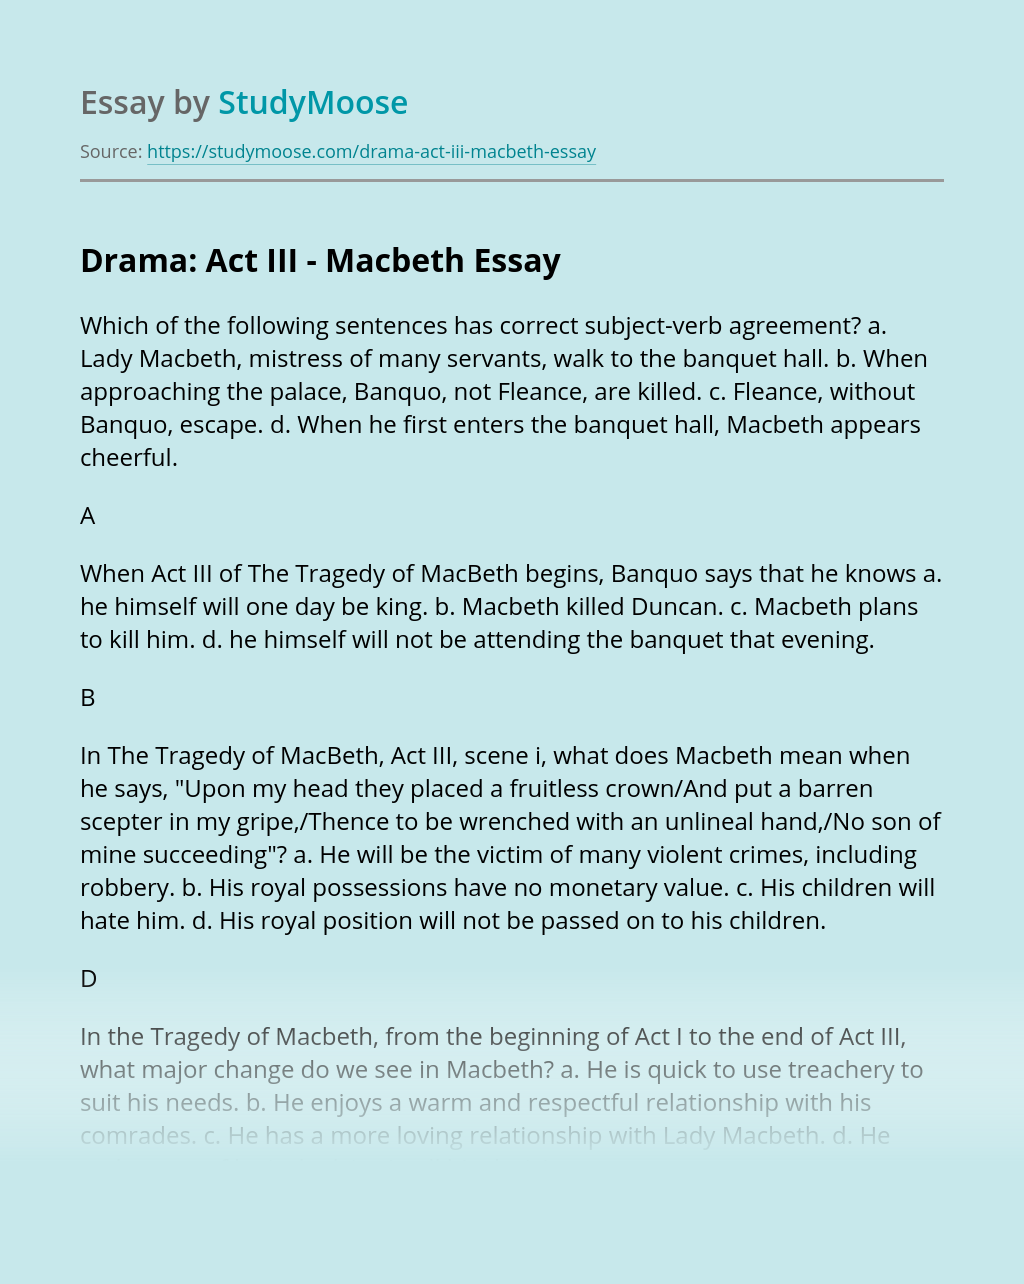 Drama: Act III - Macbeth